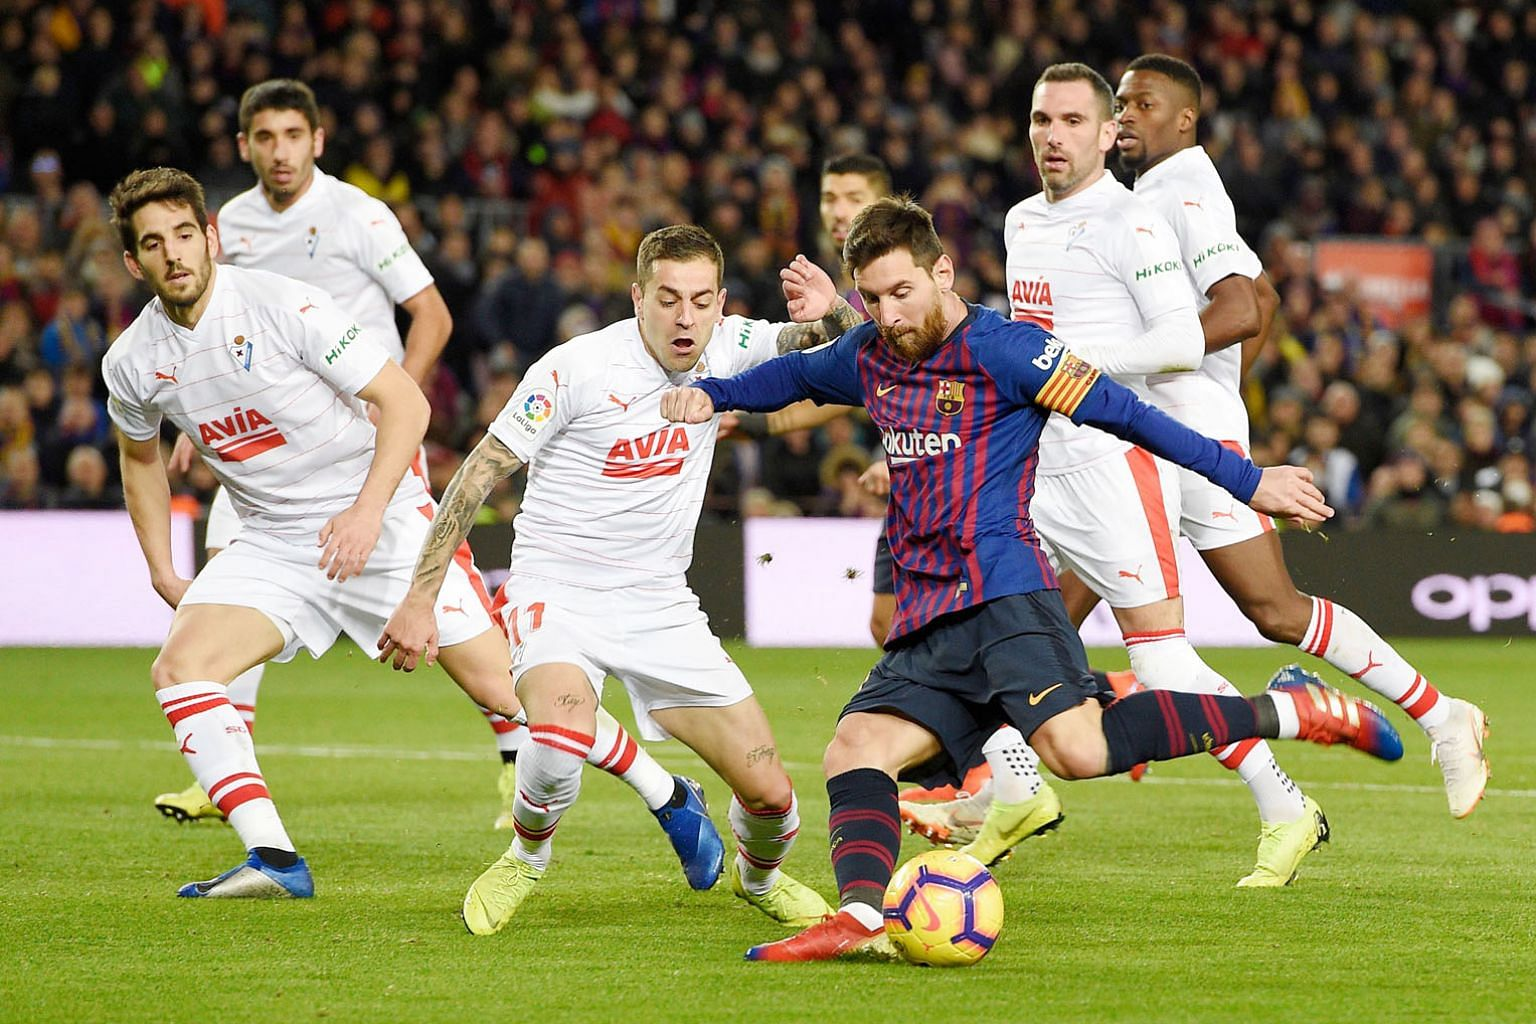 Lionel Messi scoring Barcelona's second goal against Eibar at the Nou Camp on Sunday. It was his 400th LaLiga goal after just 435 games.